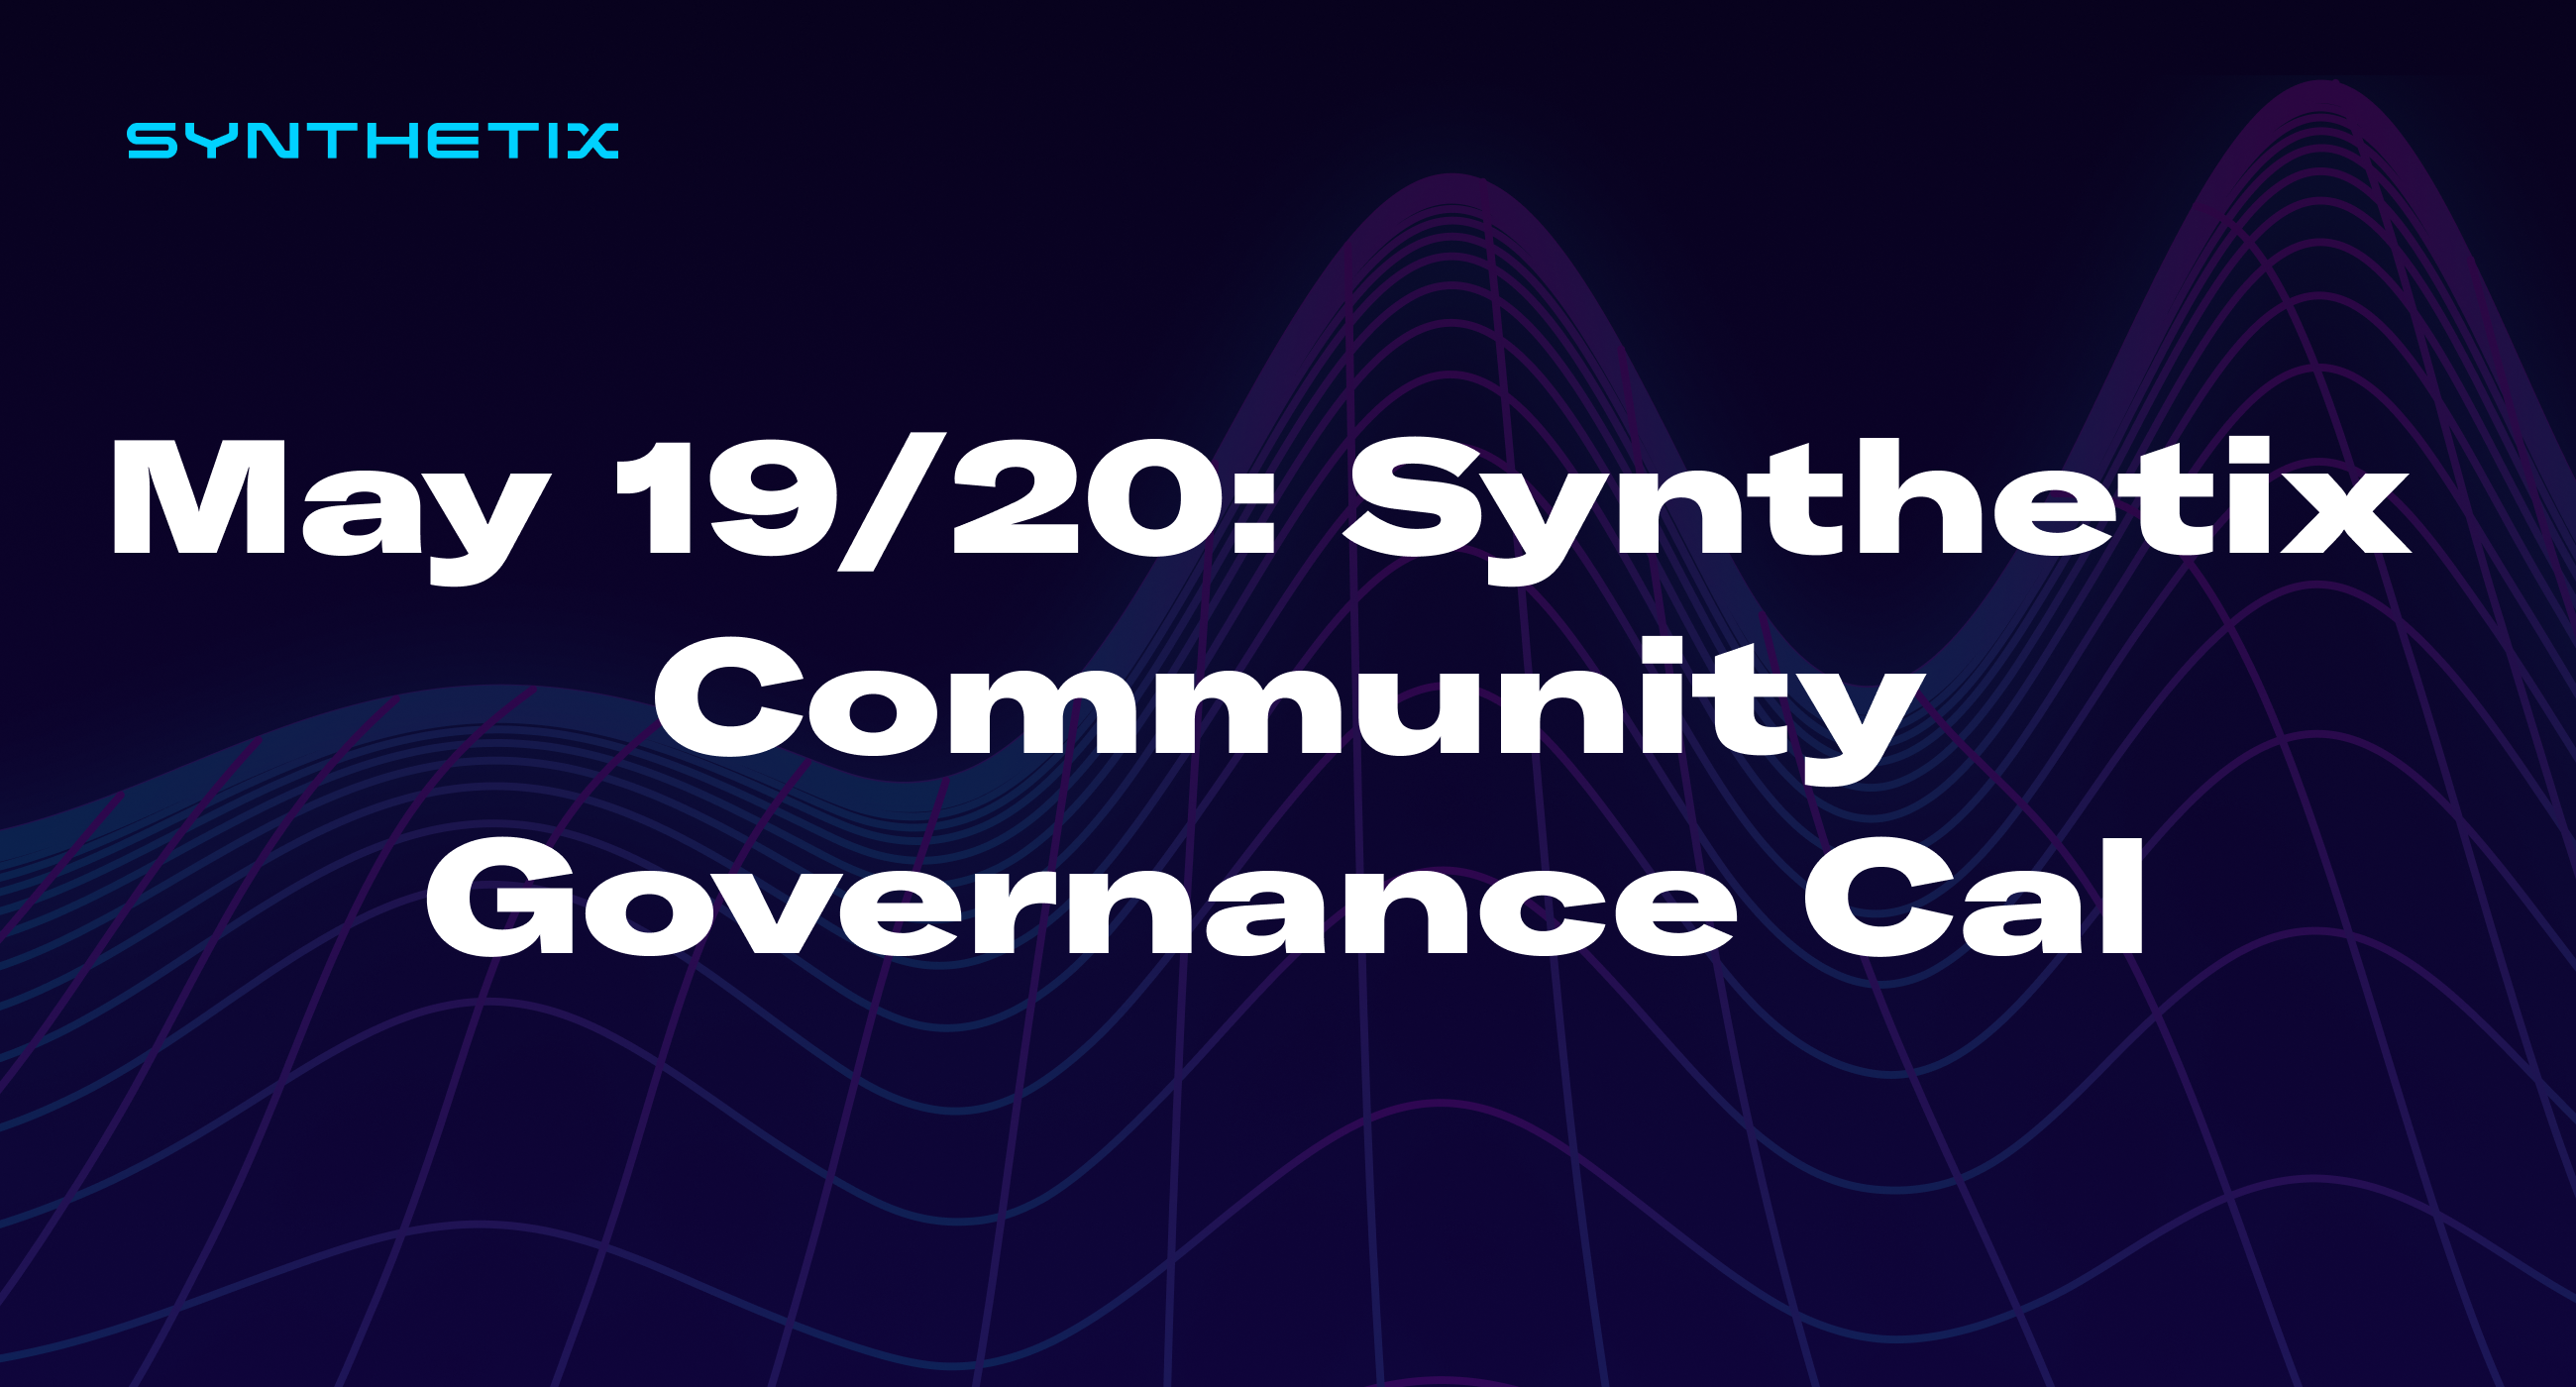 Come join us on May 19/20 for the next Synthetix community governance call!